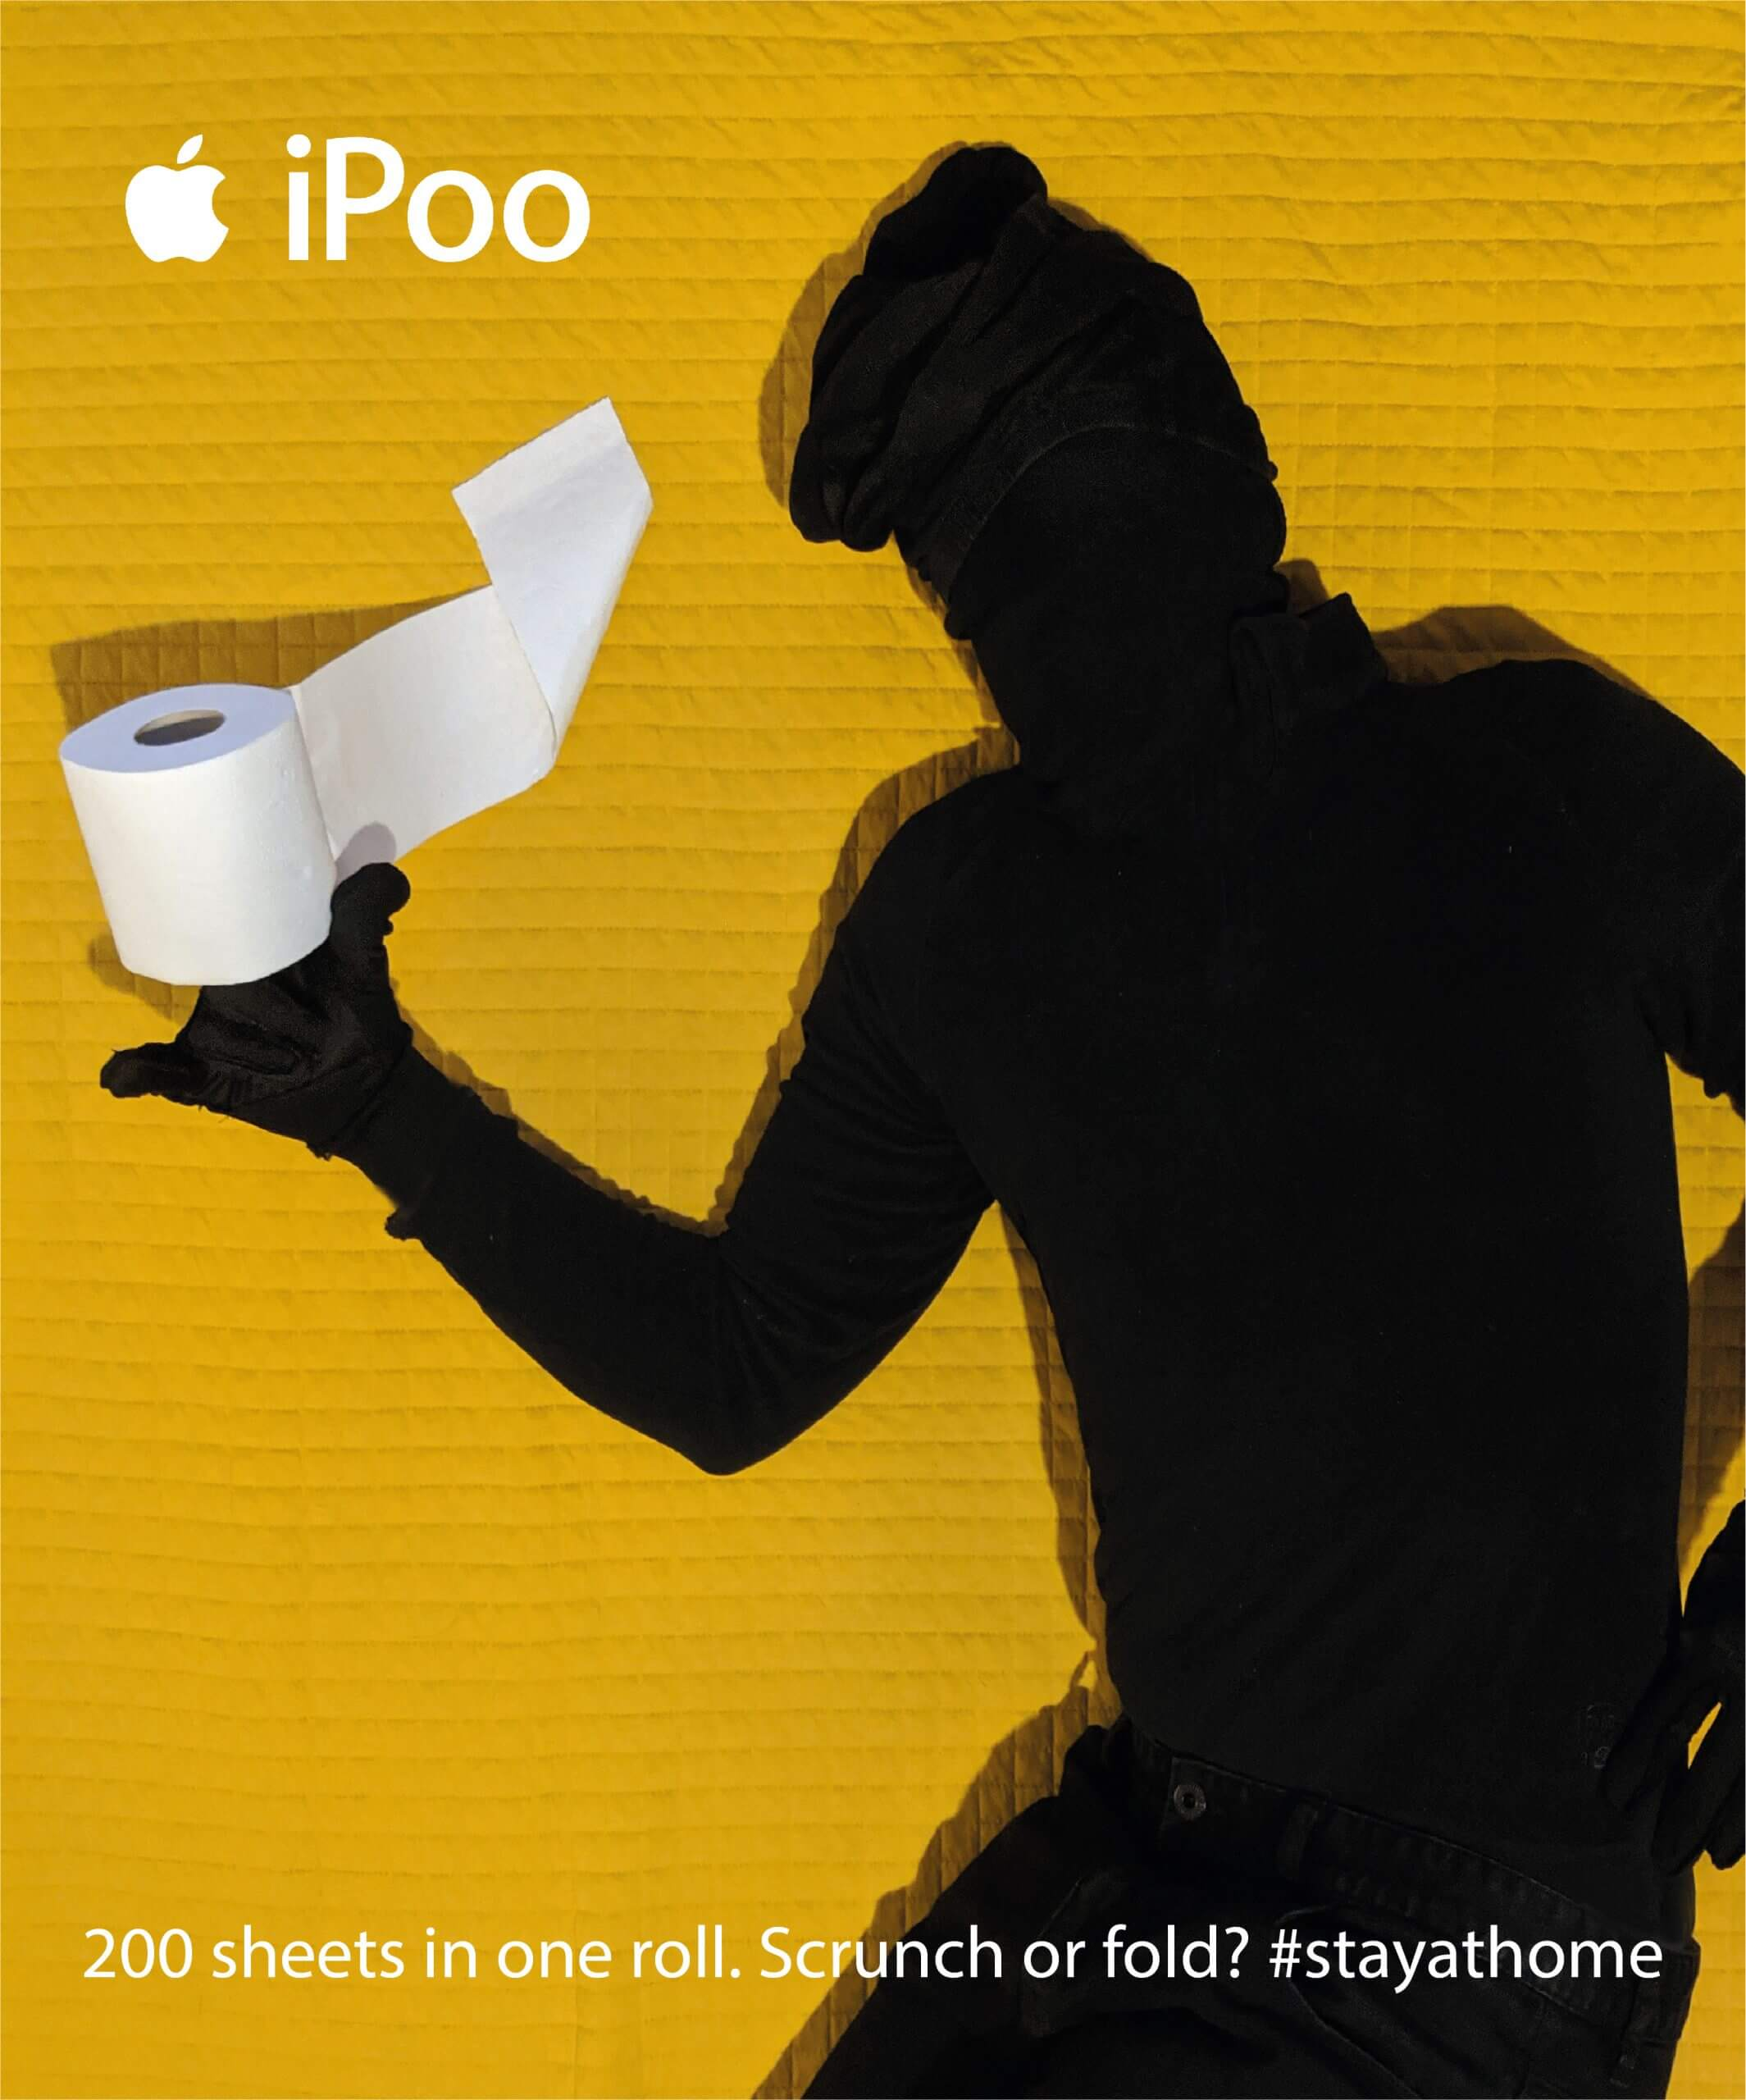 Man holding a loo roll